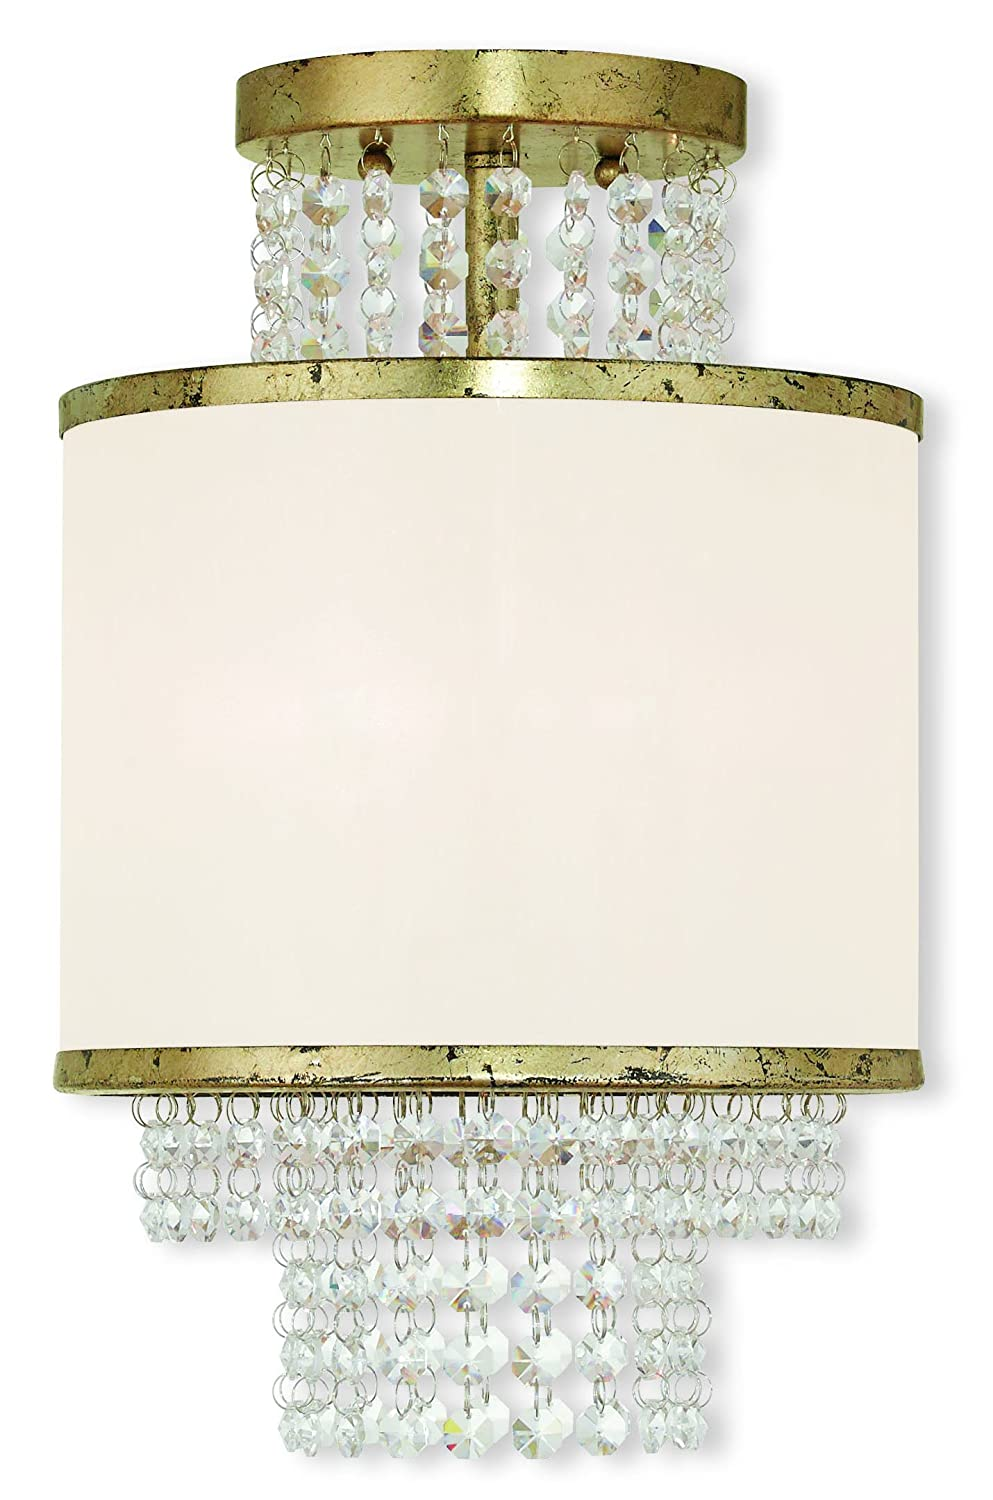 Livex Lighting 50792-28 Winter Gold Flush Mount with an Off-White Sheer Organza Shade